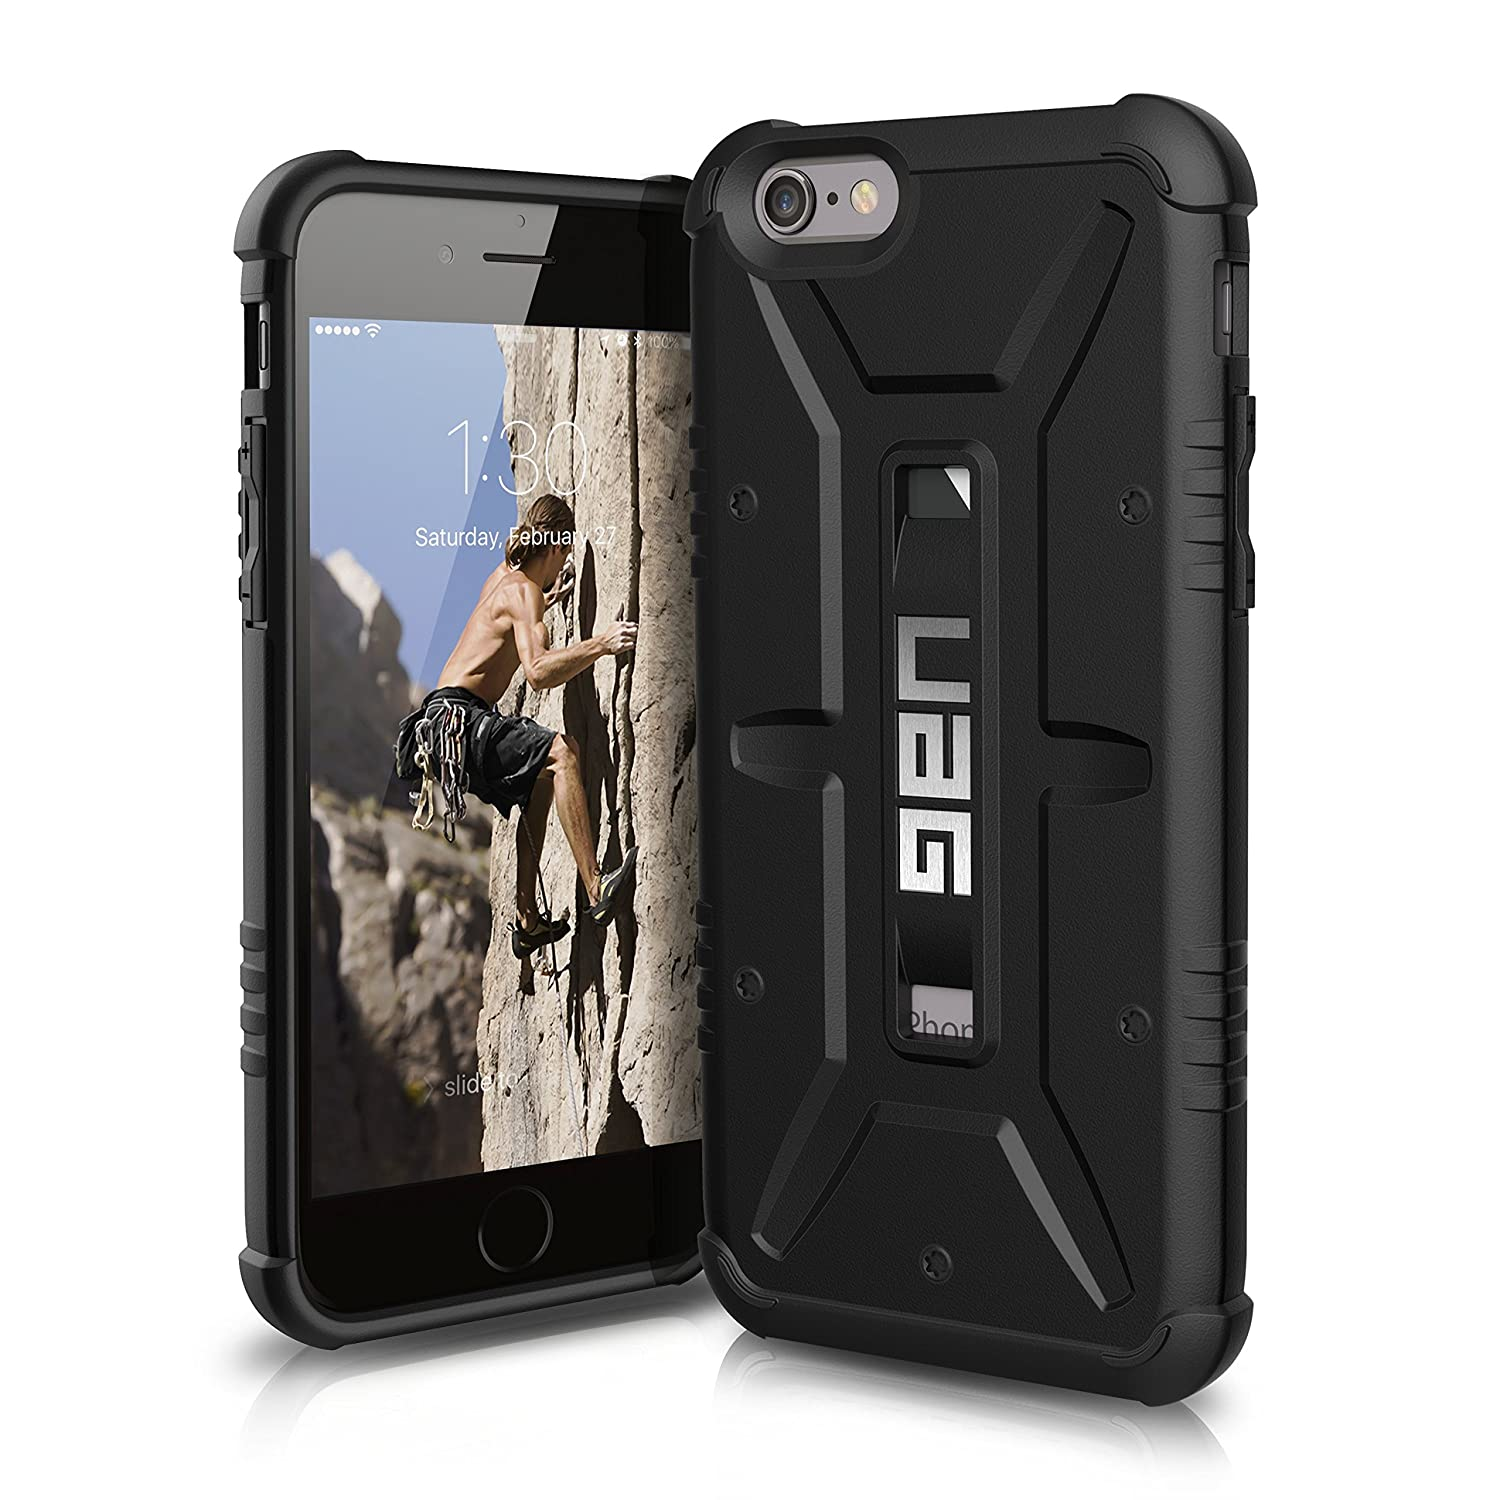 buy popular d043e 738d7 UAG iPhone 6 / iPhone 6s [4.7-inch screen] Feather-Light Composite [BLACK]  Military Drop Tested Phone Case